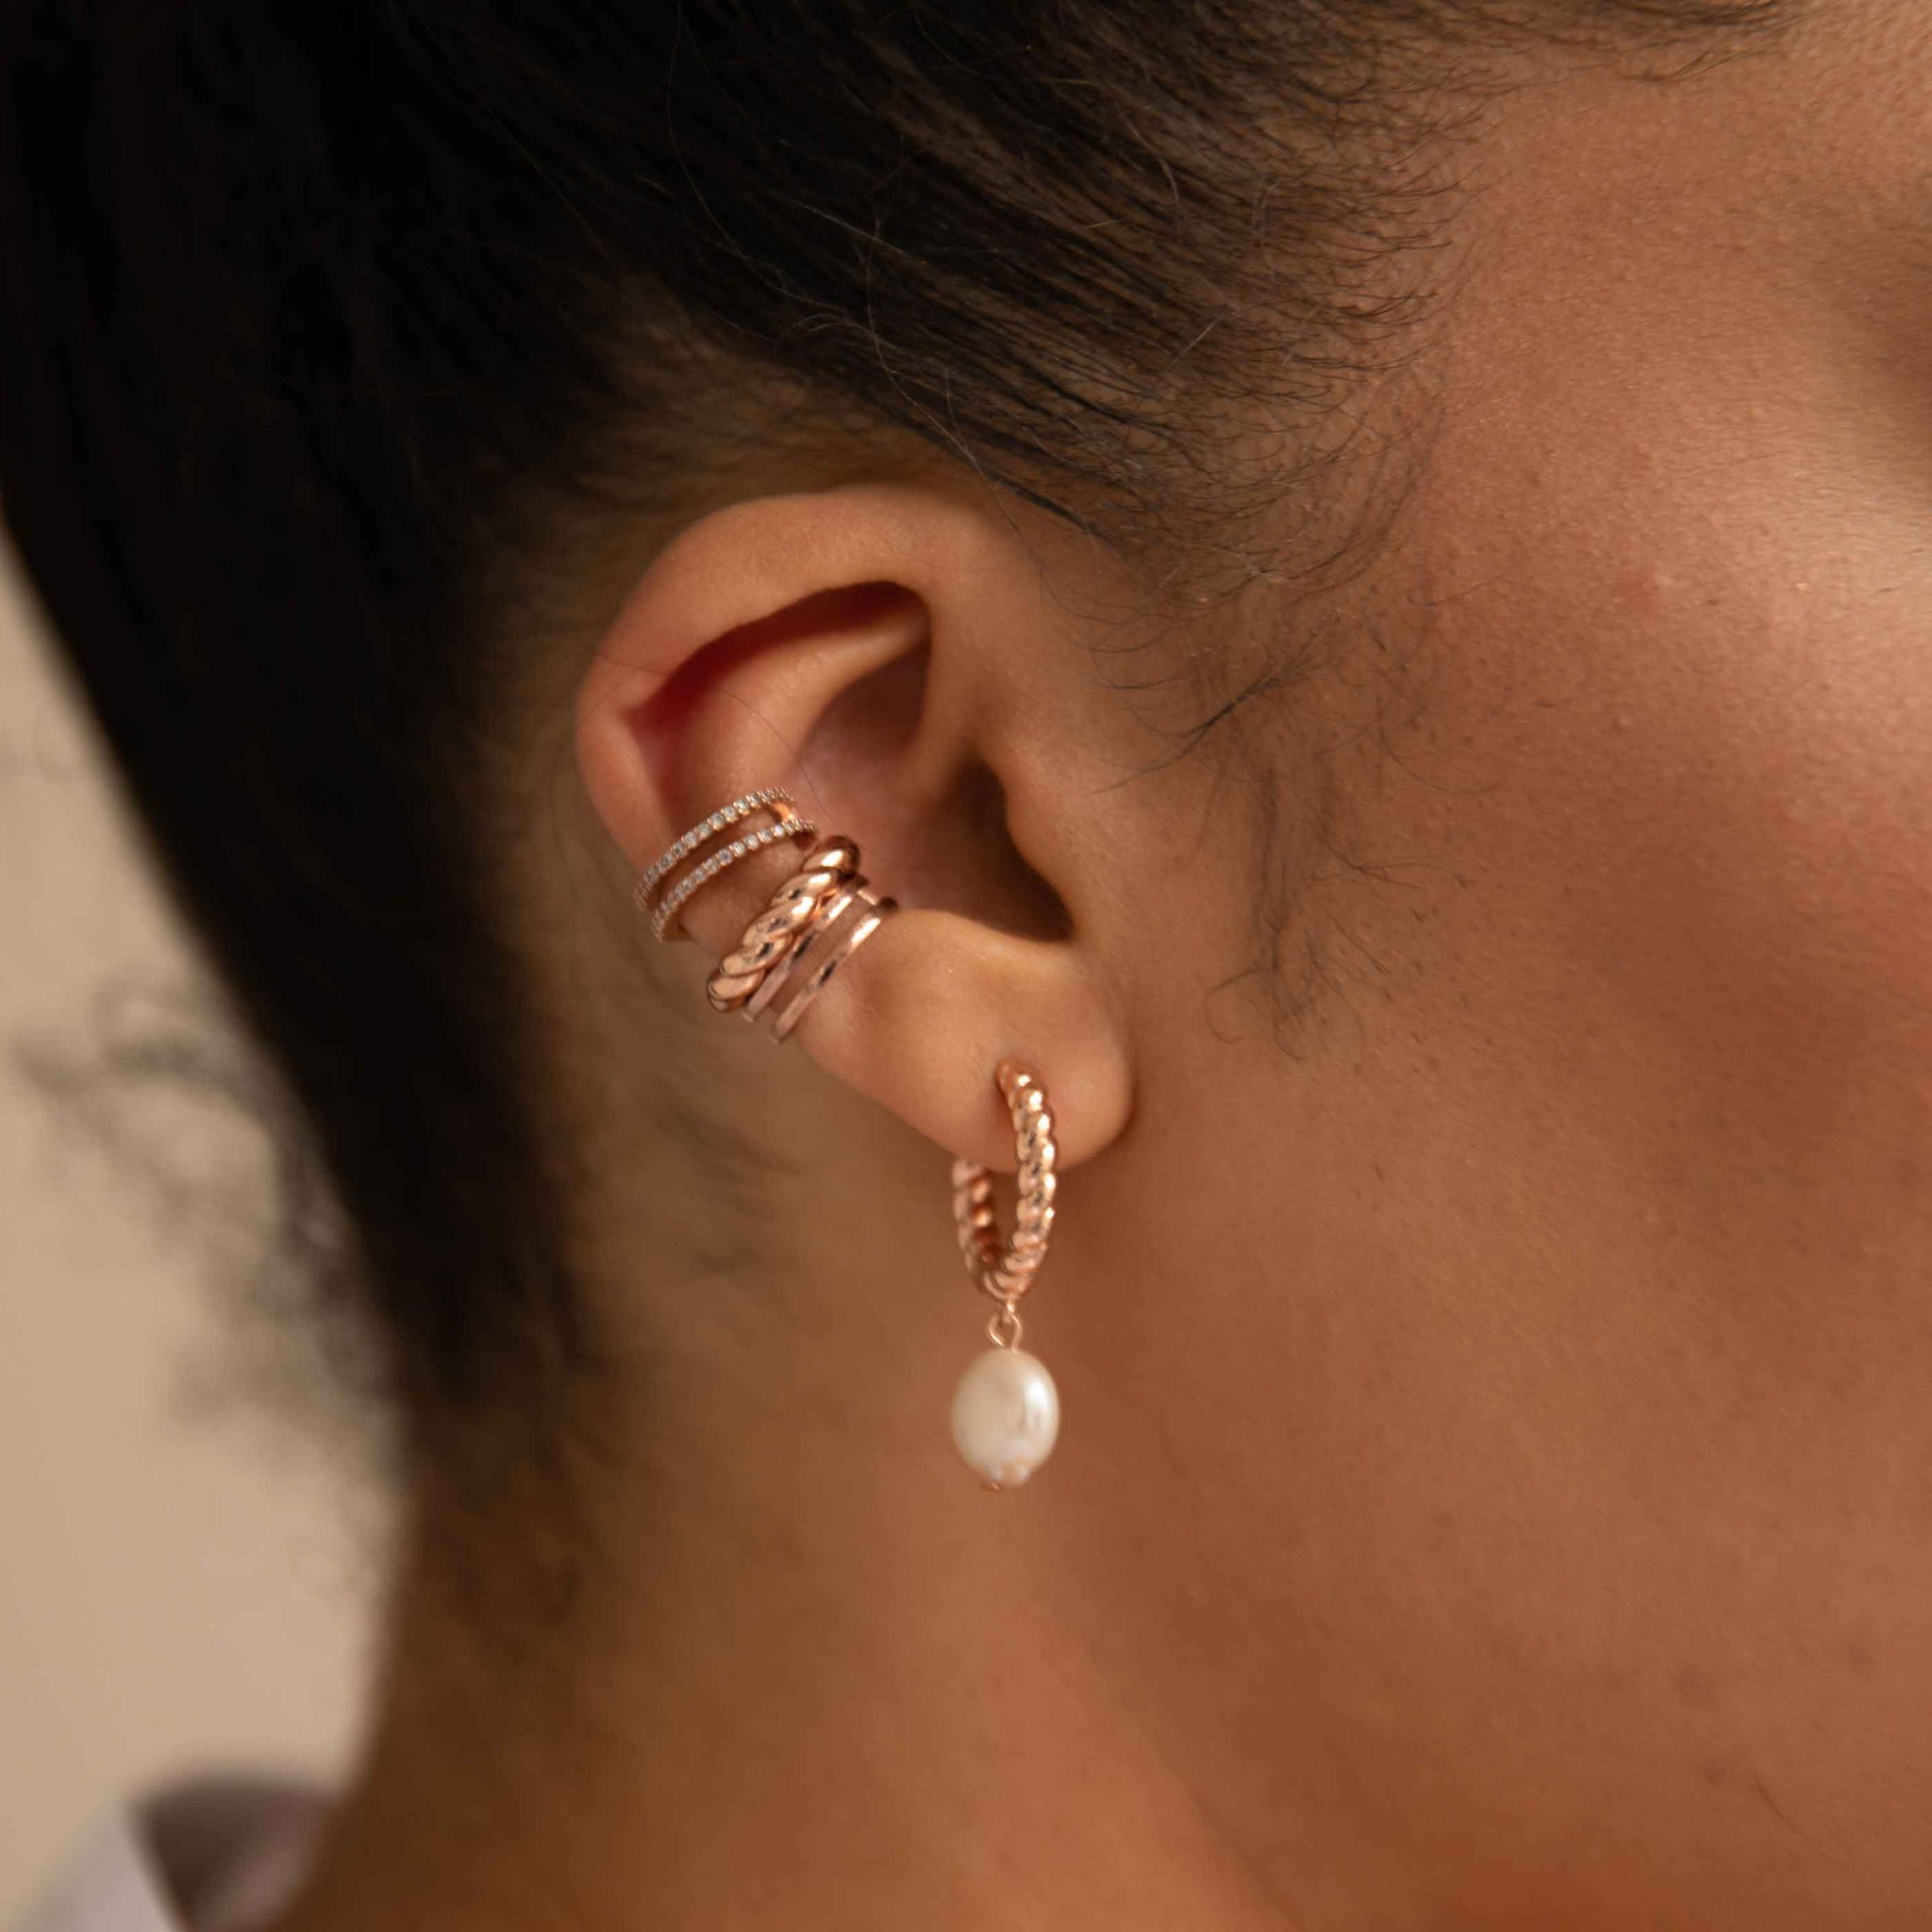 Rope & Pearl Pendant Hoops in Rose Gold worn with ear cuffs